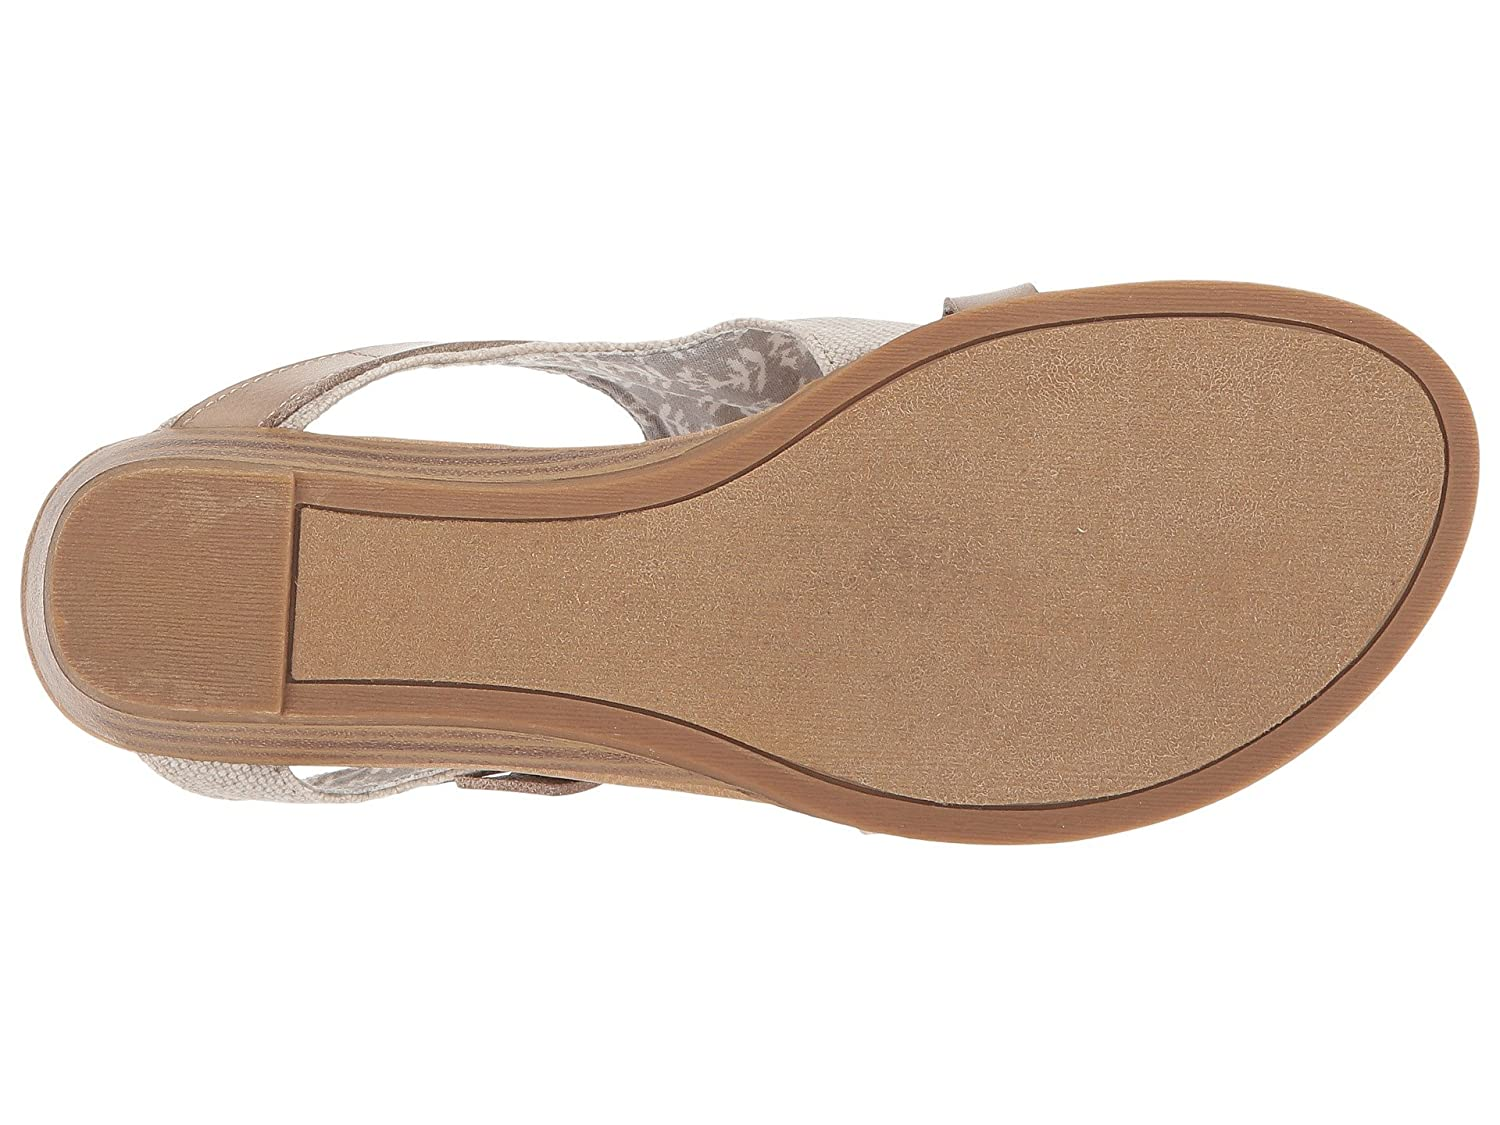 Blowfish Women's Barria Slide Sandal B07DHPPQYX 6.5 37-37 M EU / 6.5 B07DHPPQYX B(M) US|Birch Rancher Canvas 1faad5